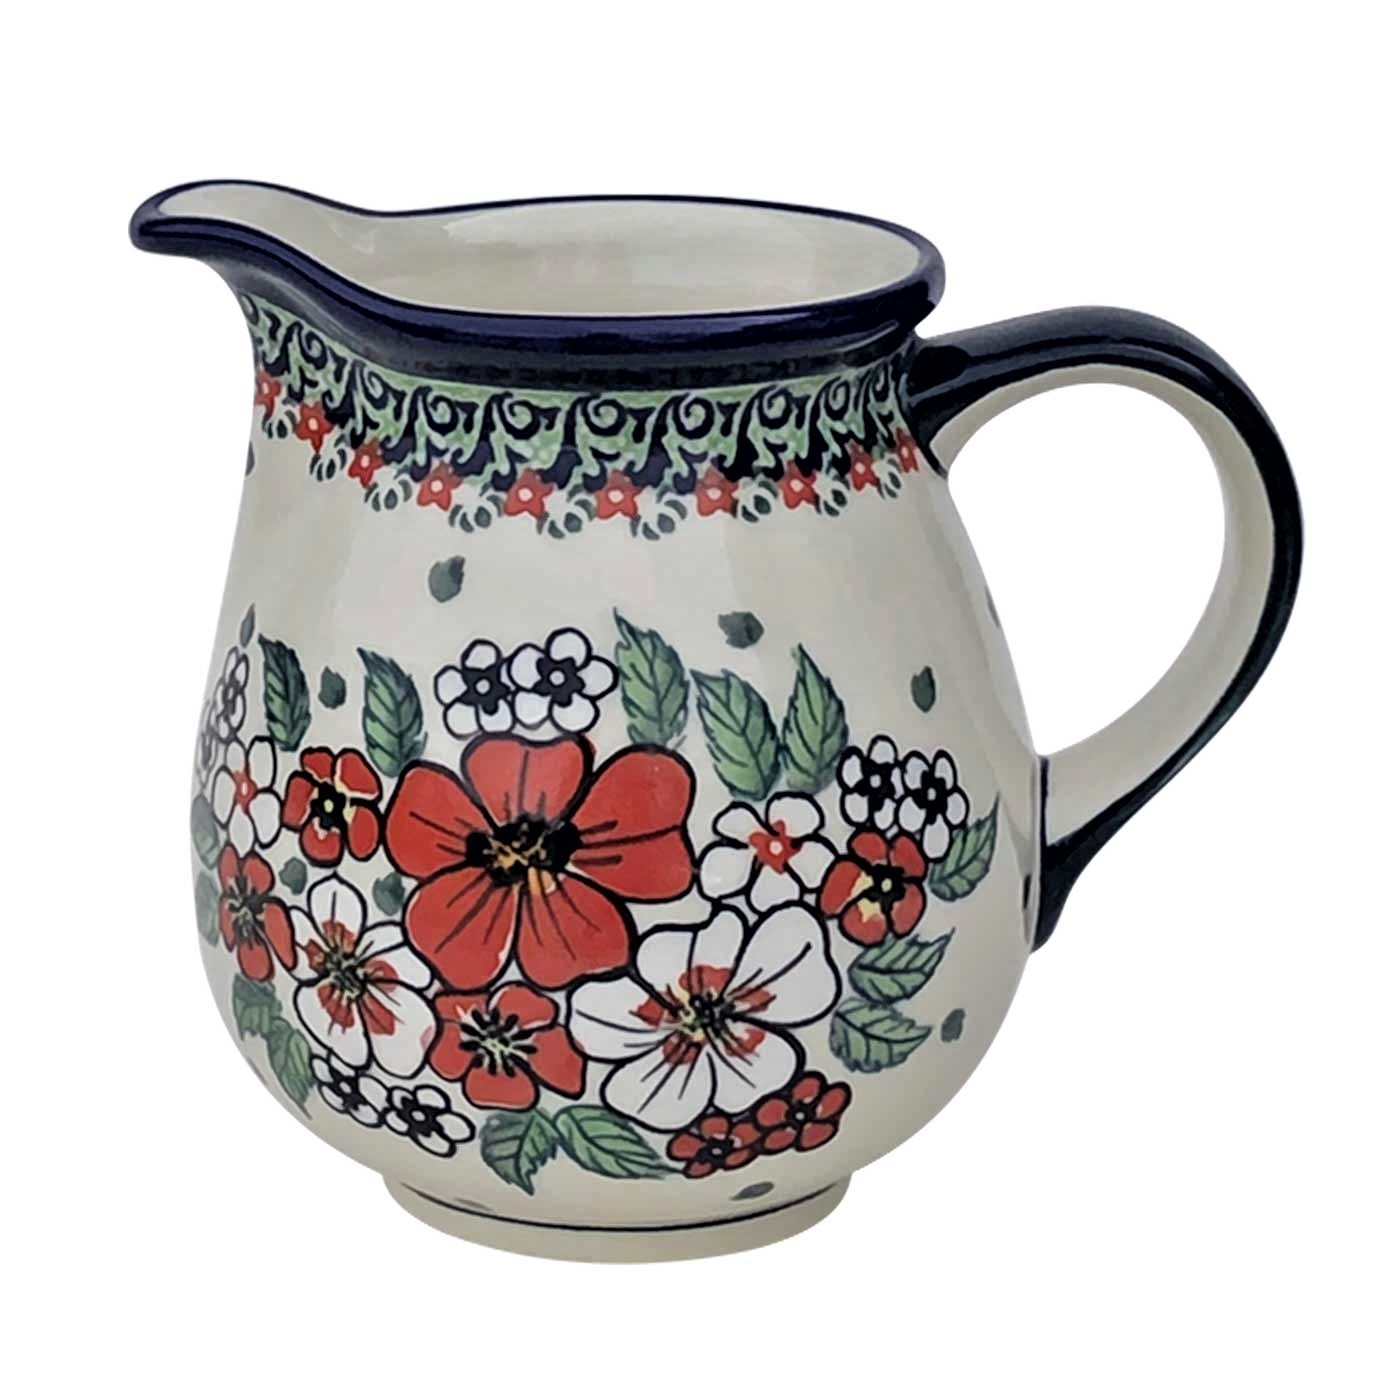 Pottery Avenue 28-oz UNIKAT Stoneware Pitcher - 951-326AR Empress